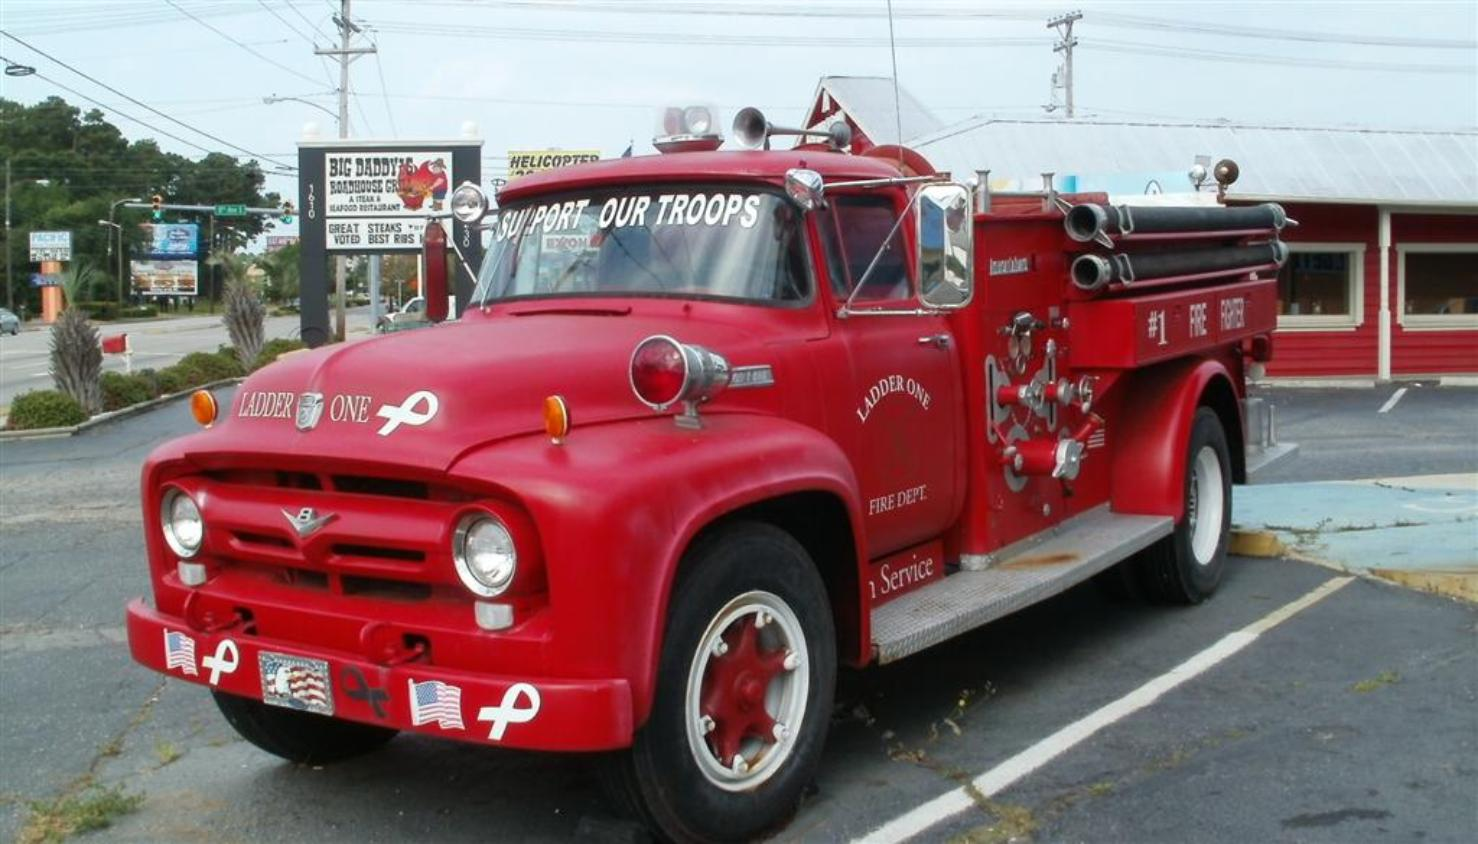 Support Our Troops Fire Truck - Photo courtesy of Tom & Vickie Reckers.